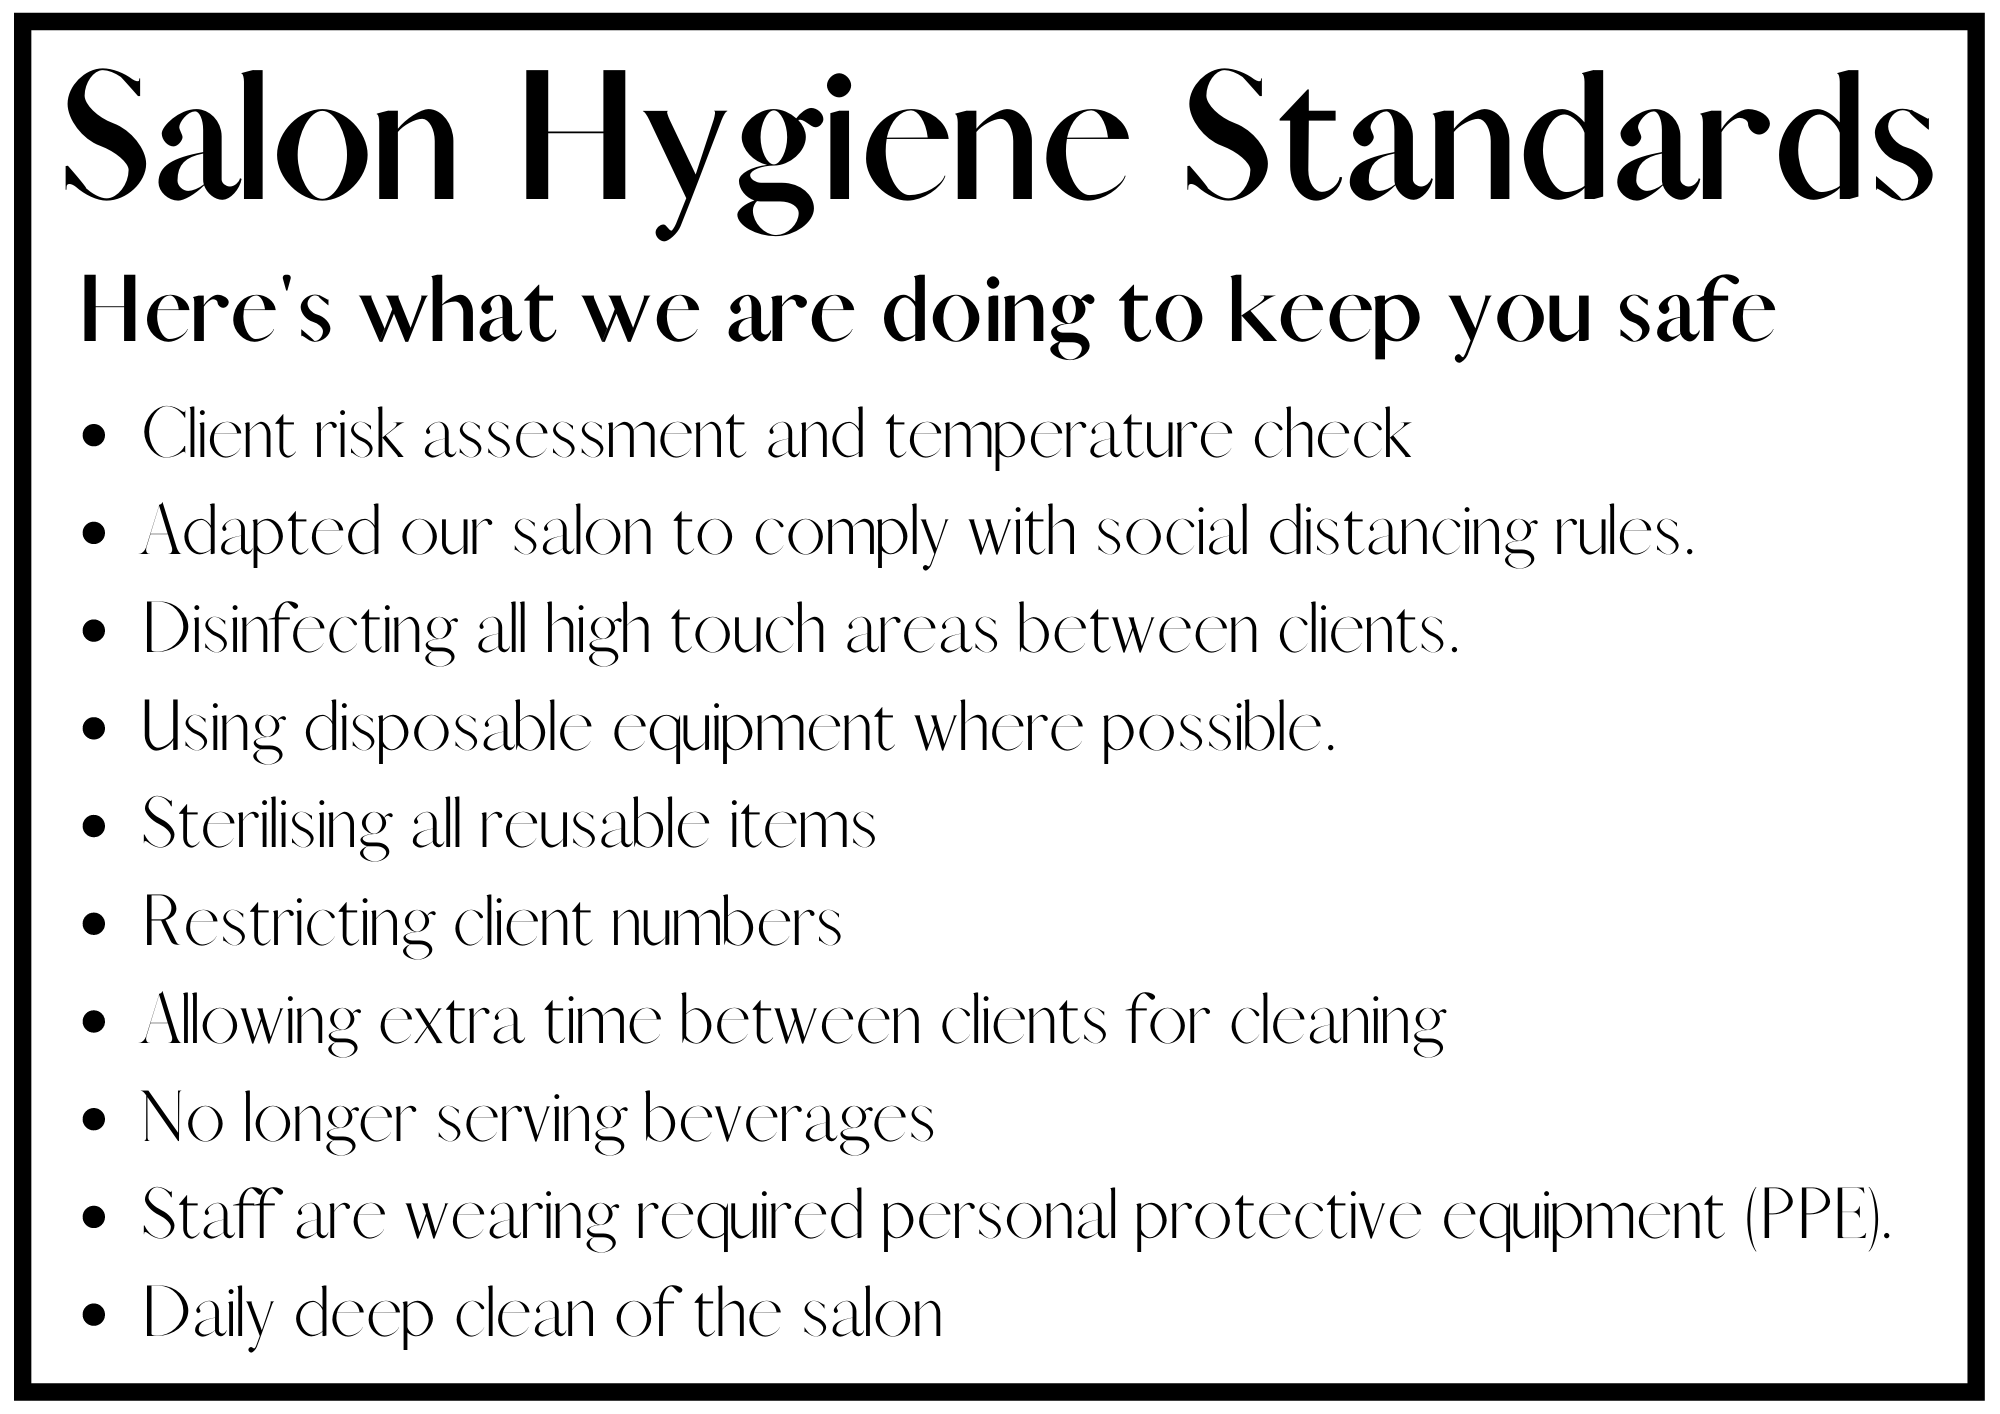 white poster with text for salon hygiene standards.